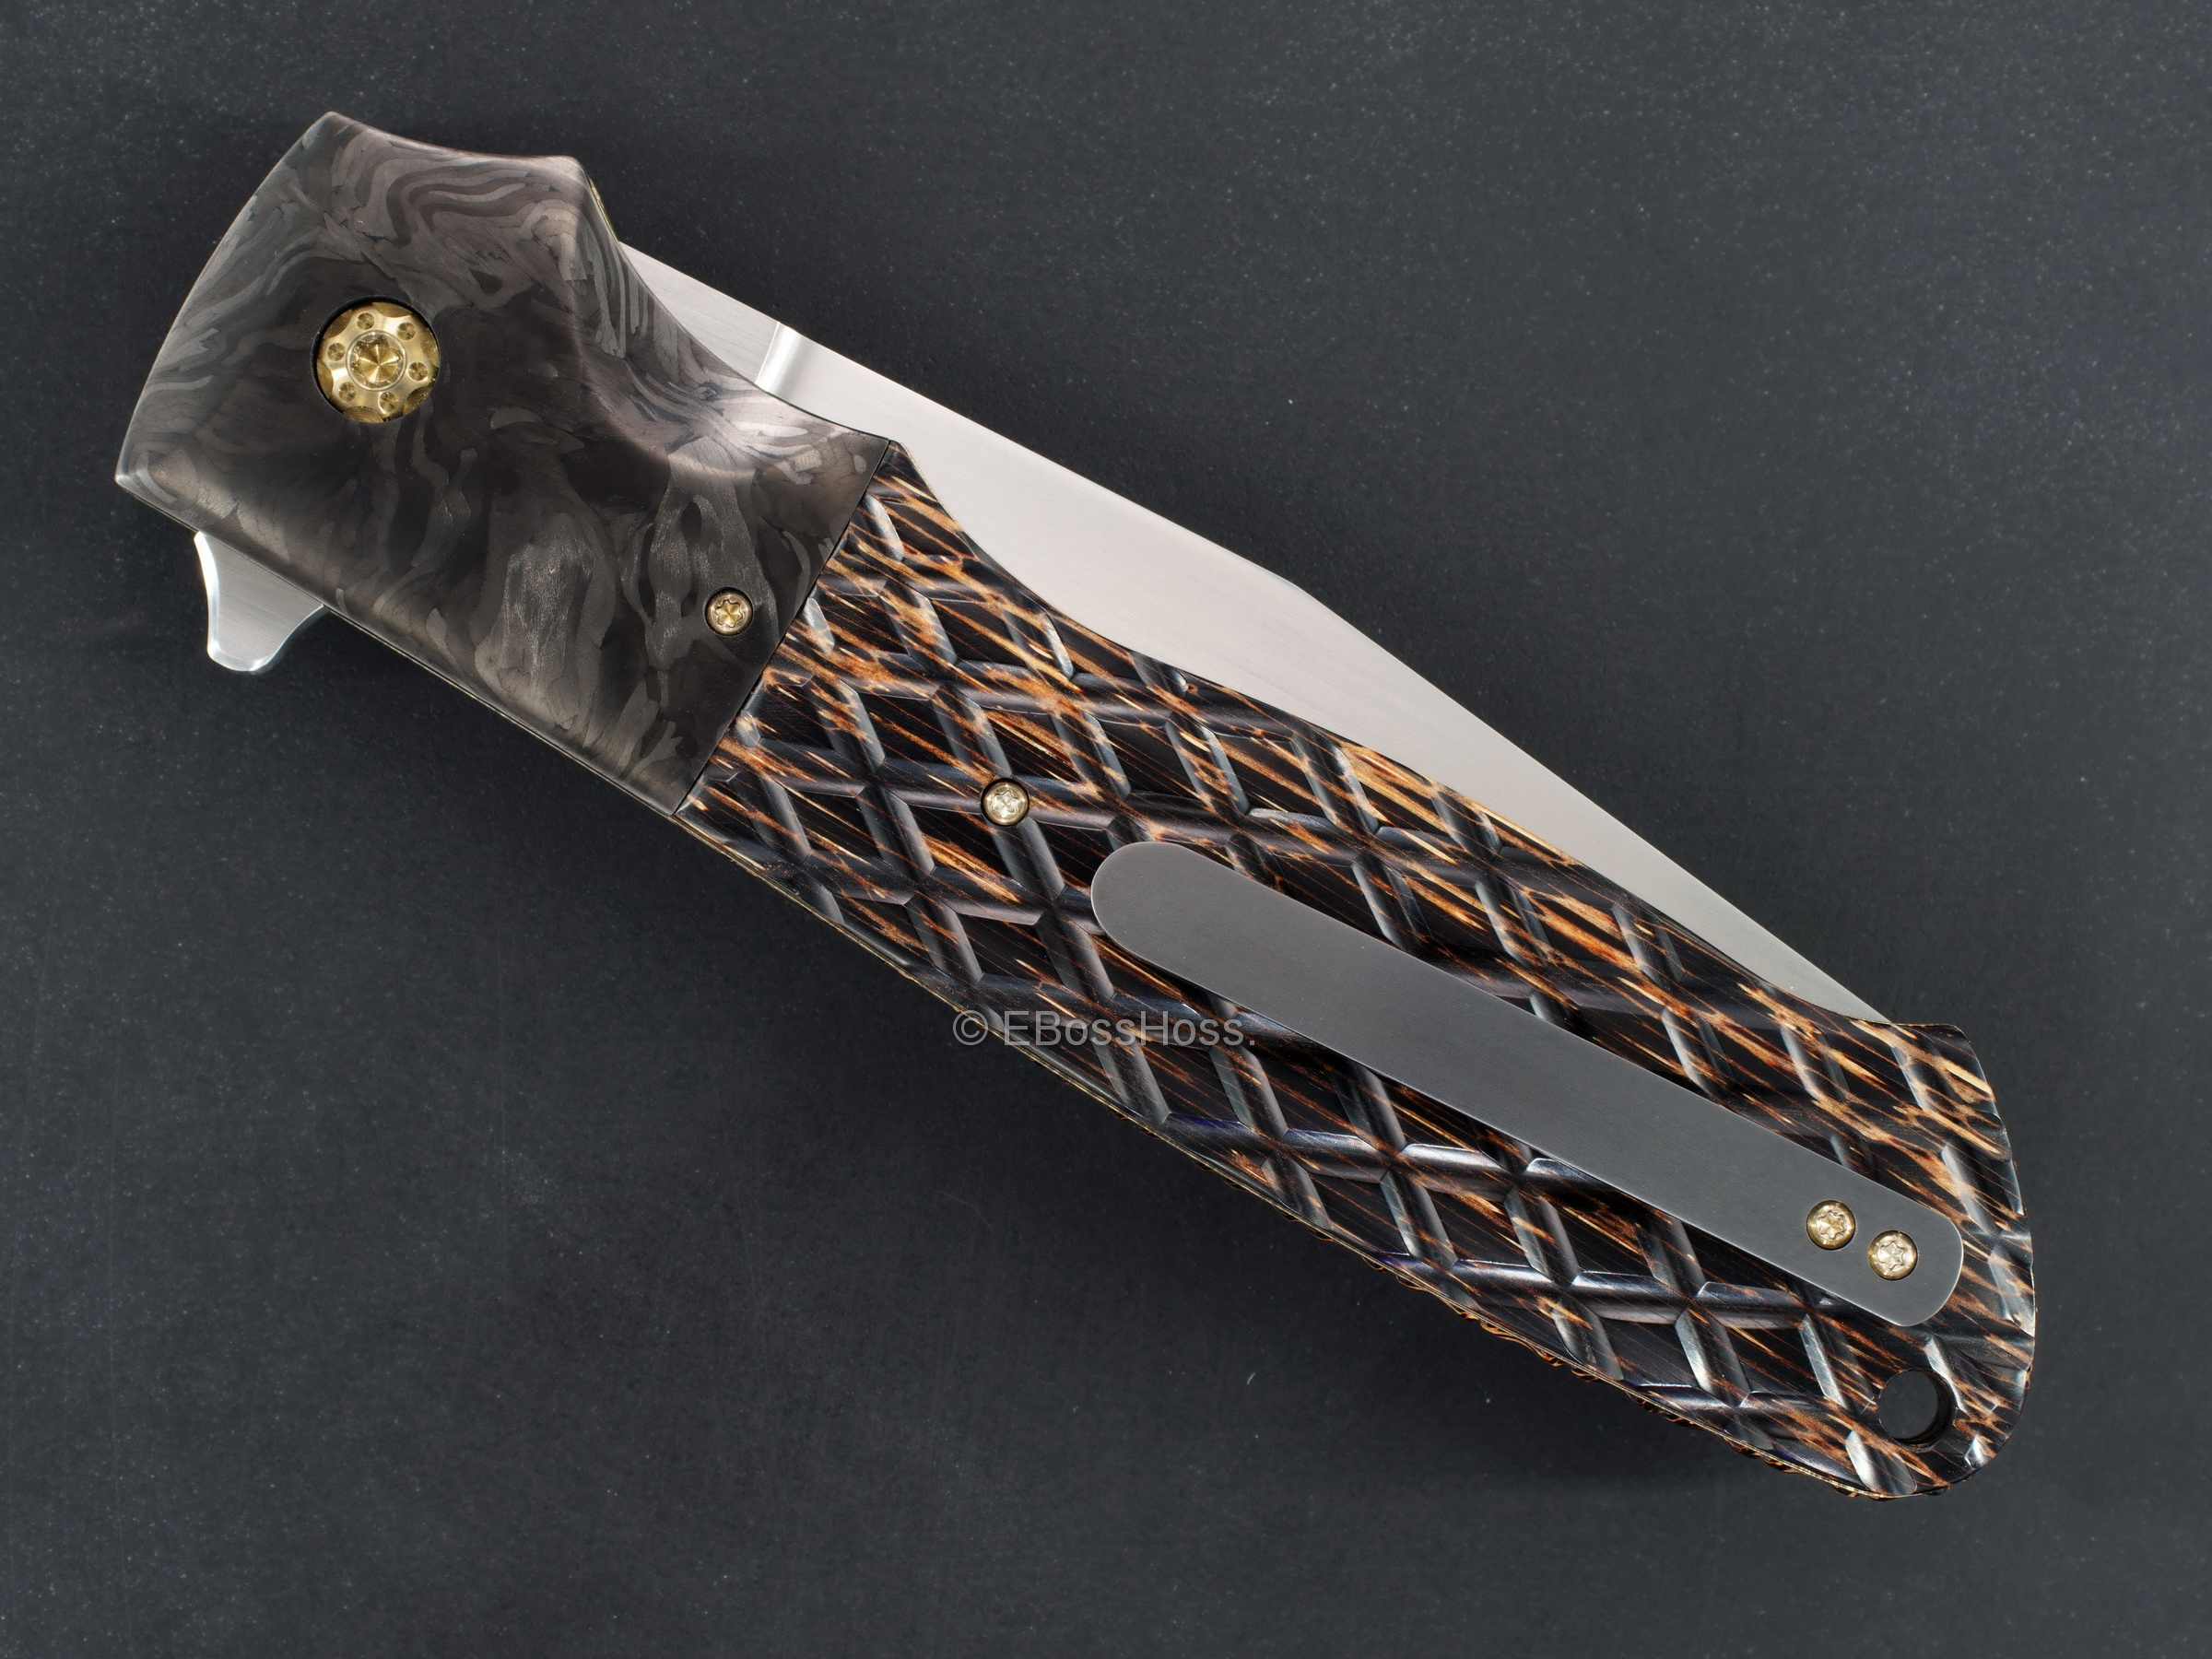 John W Smith Custom Deluxe Iterum Flipper